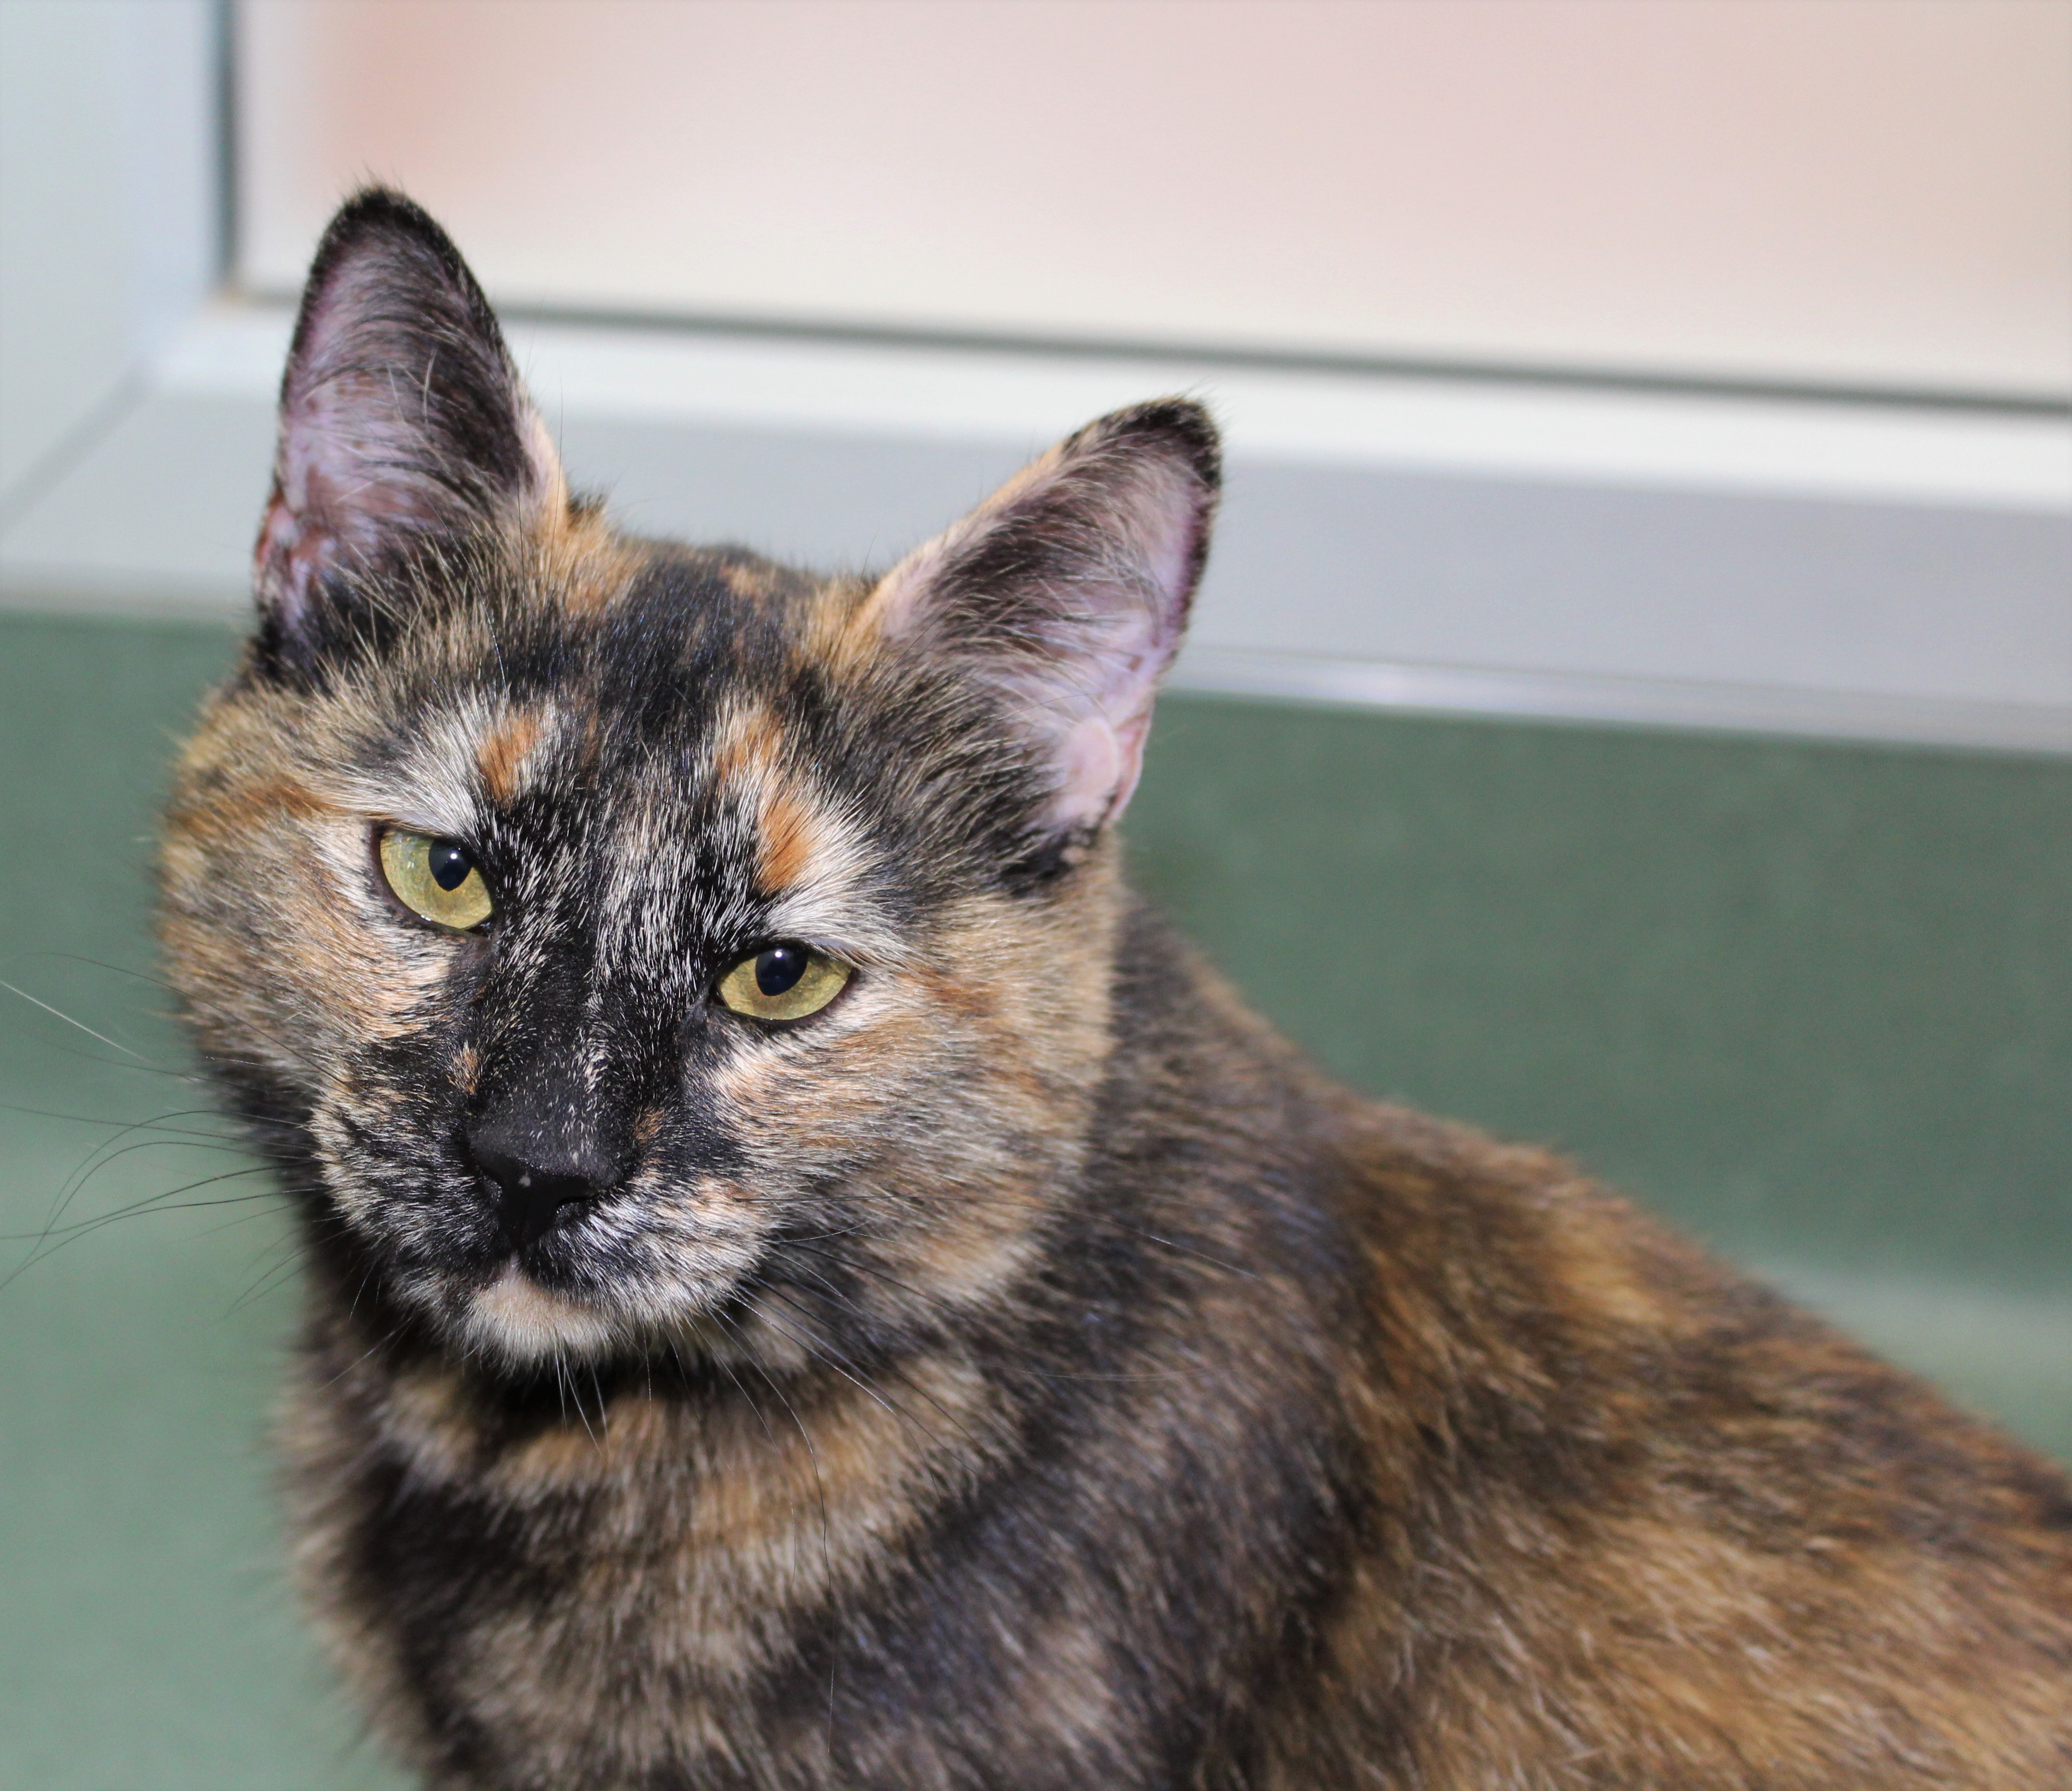 Peninsula Humane Society & SPCA's Pet of the Week: Mathilda